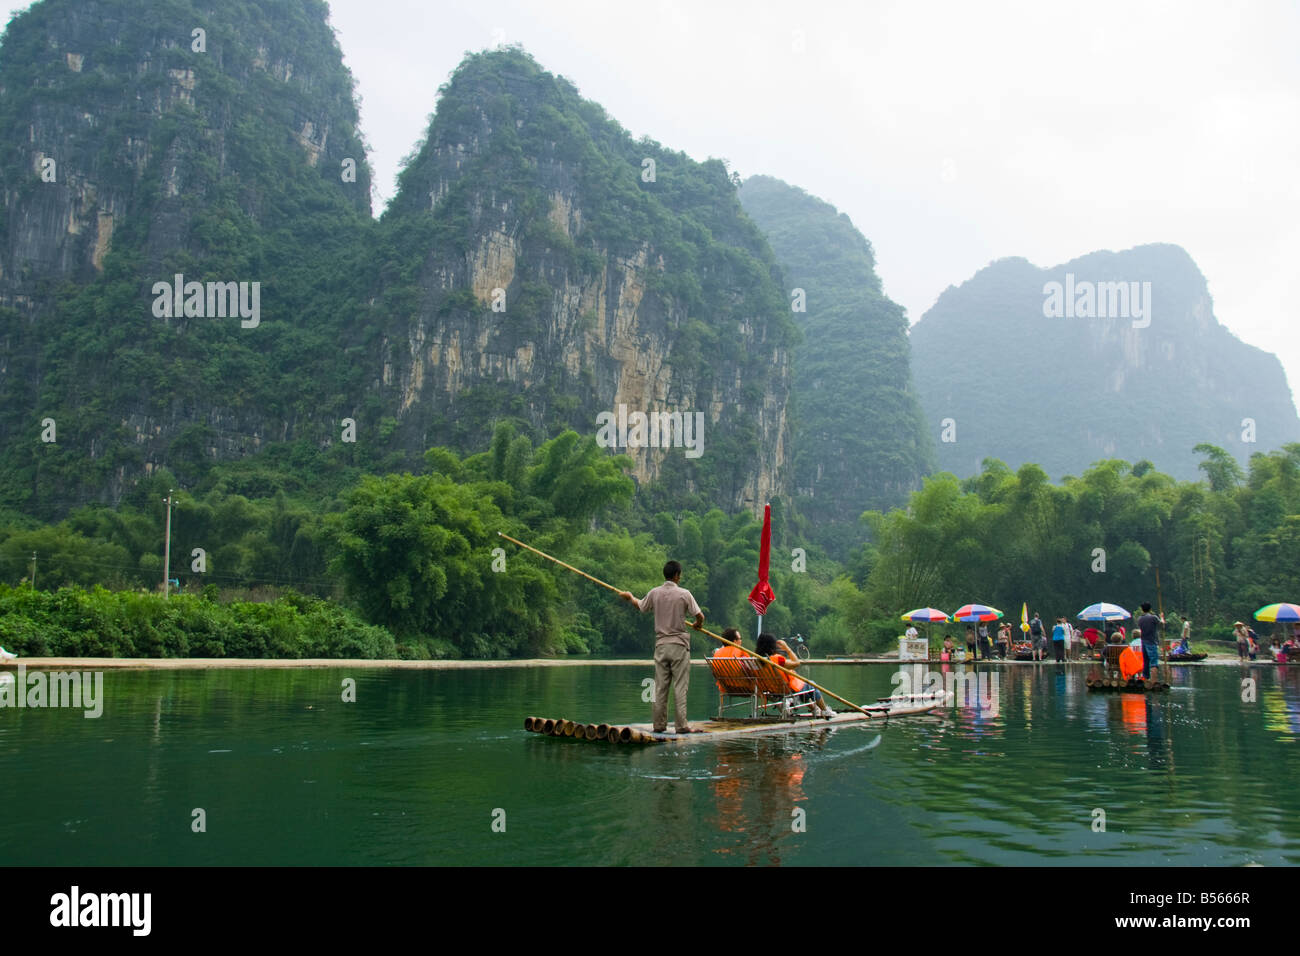 Bamboo boats on the Yu Long or Dragon River, Yangshuo, China - Stock Image